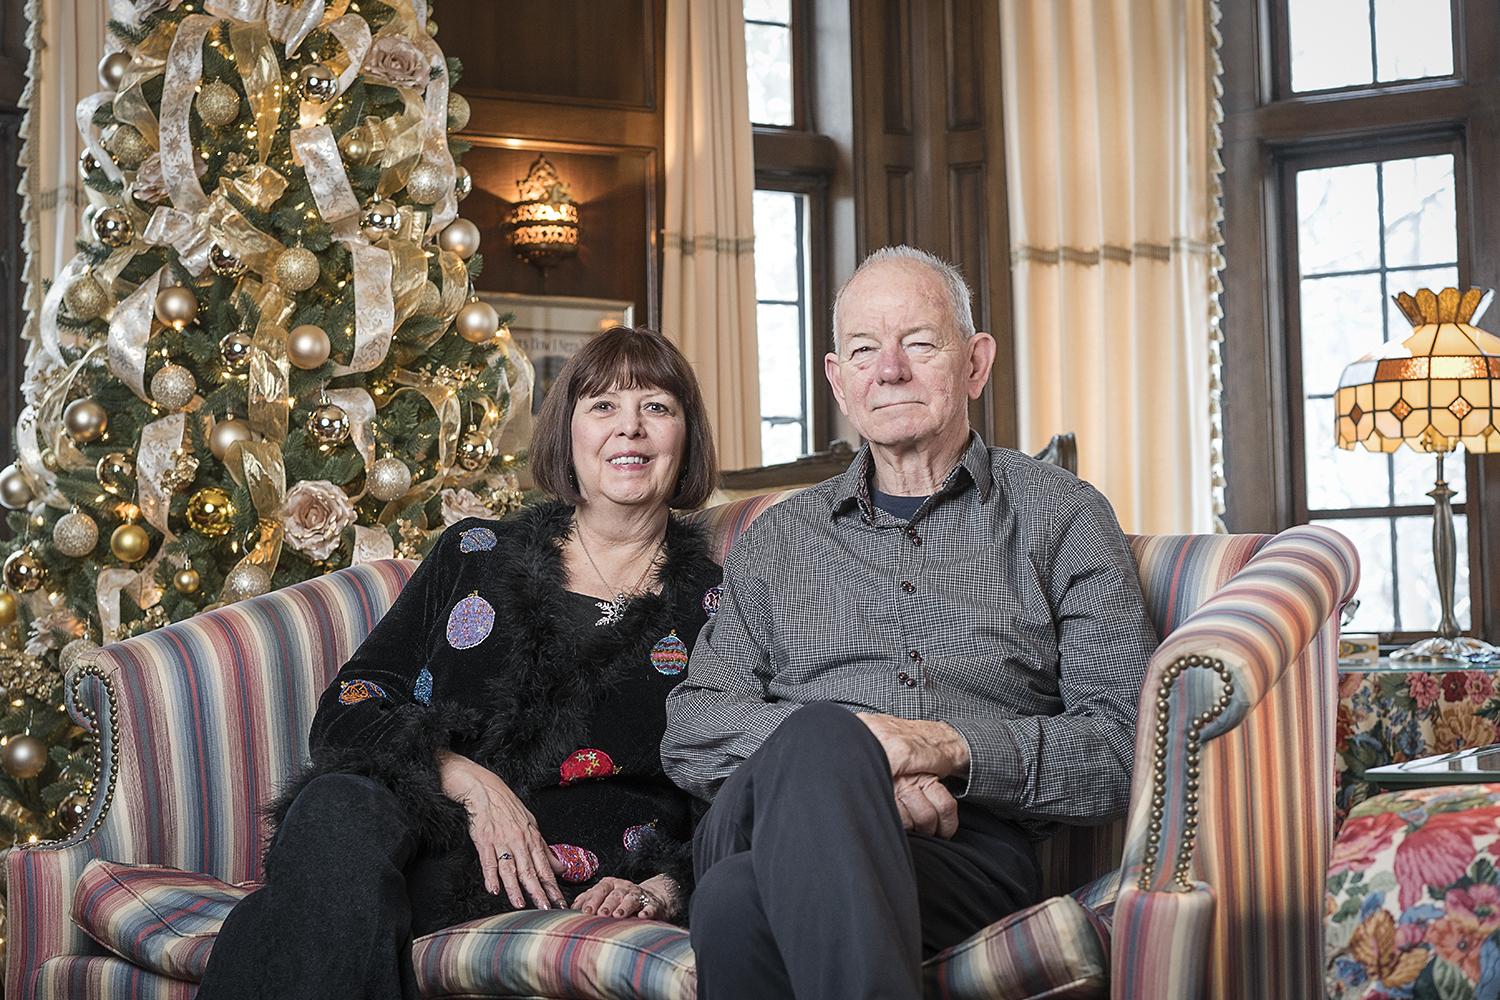 Flint, MI - Saturday, December 9, 2017: Rosanne (left) and Steve Heddy have donated over $300,000 to various charities and college funds over the past twenty years by opening their home for guests to revel in the holiday spirit and view their large Christmas tree collection.Tim Galloway for FlintSide